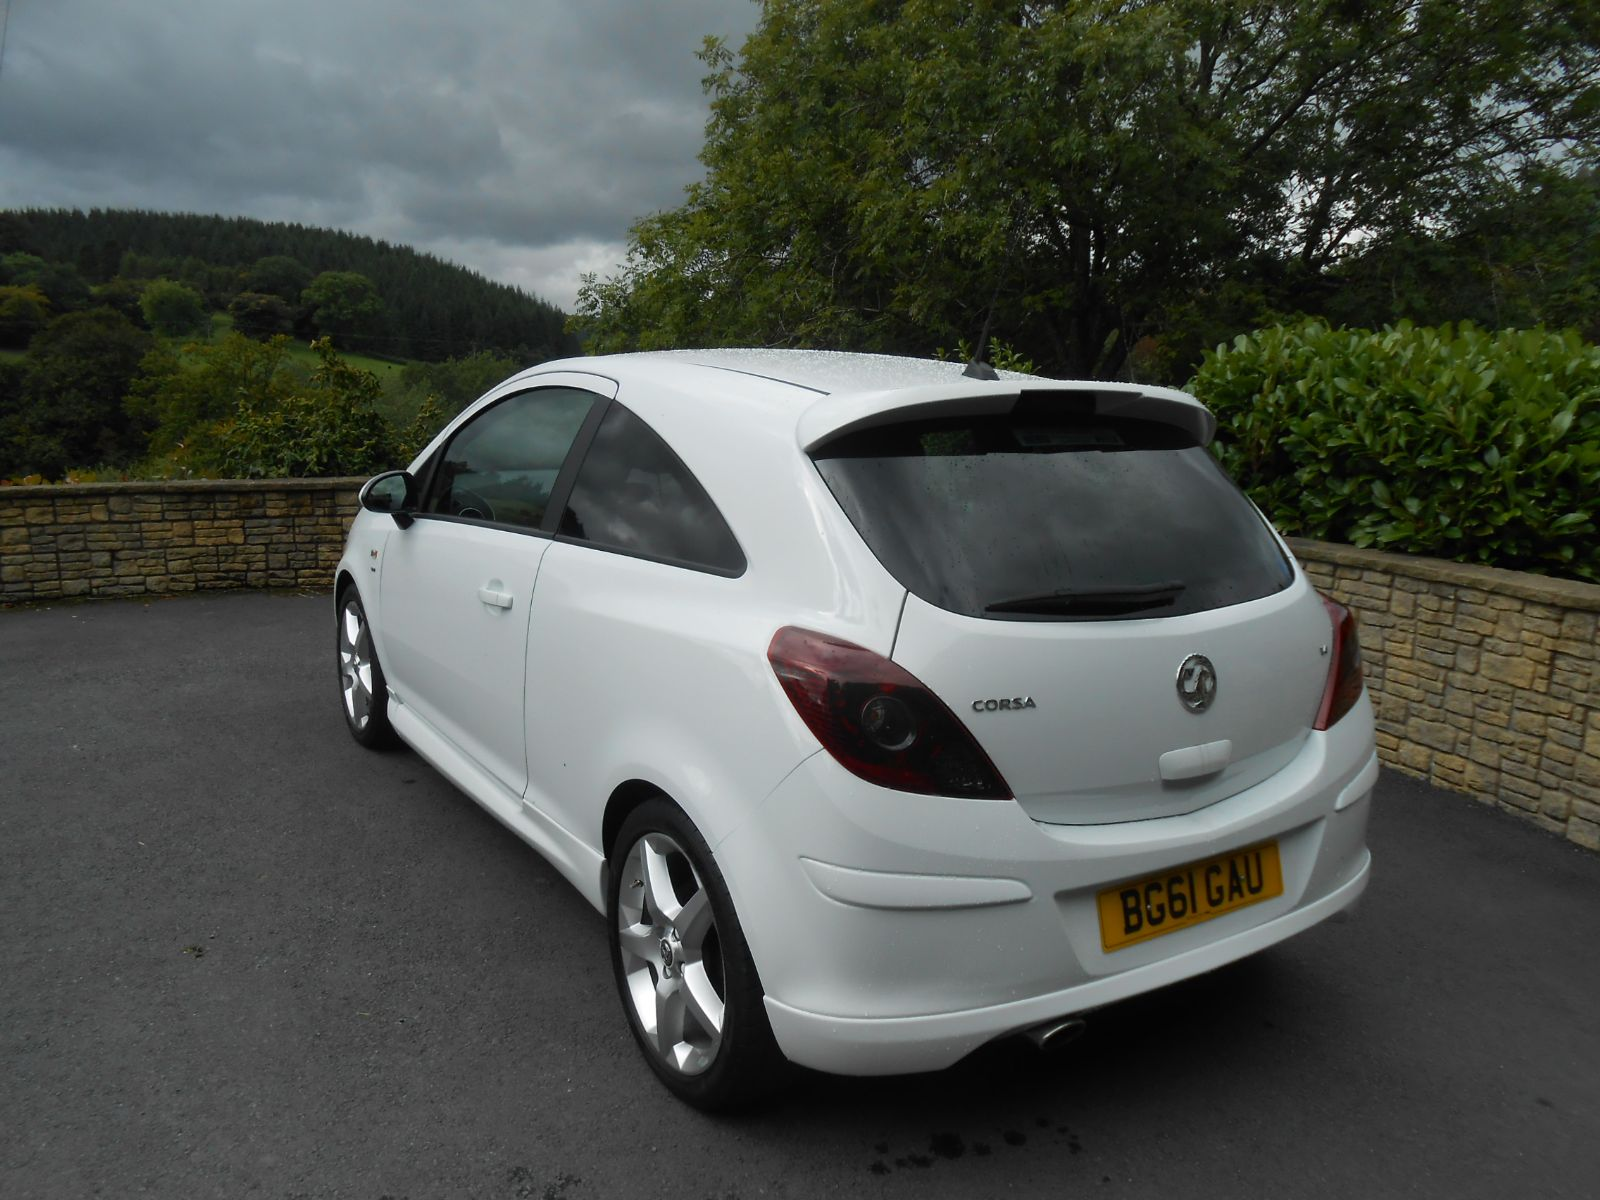 vauxhall corsa 1 4 sri car for sale llanidloes powys mid wales kevin jones cars used cars. Black Bedroom Furniture Sets. Home Design Ideas